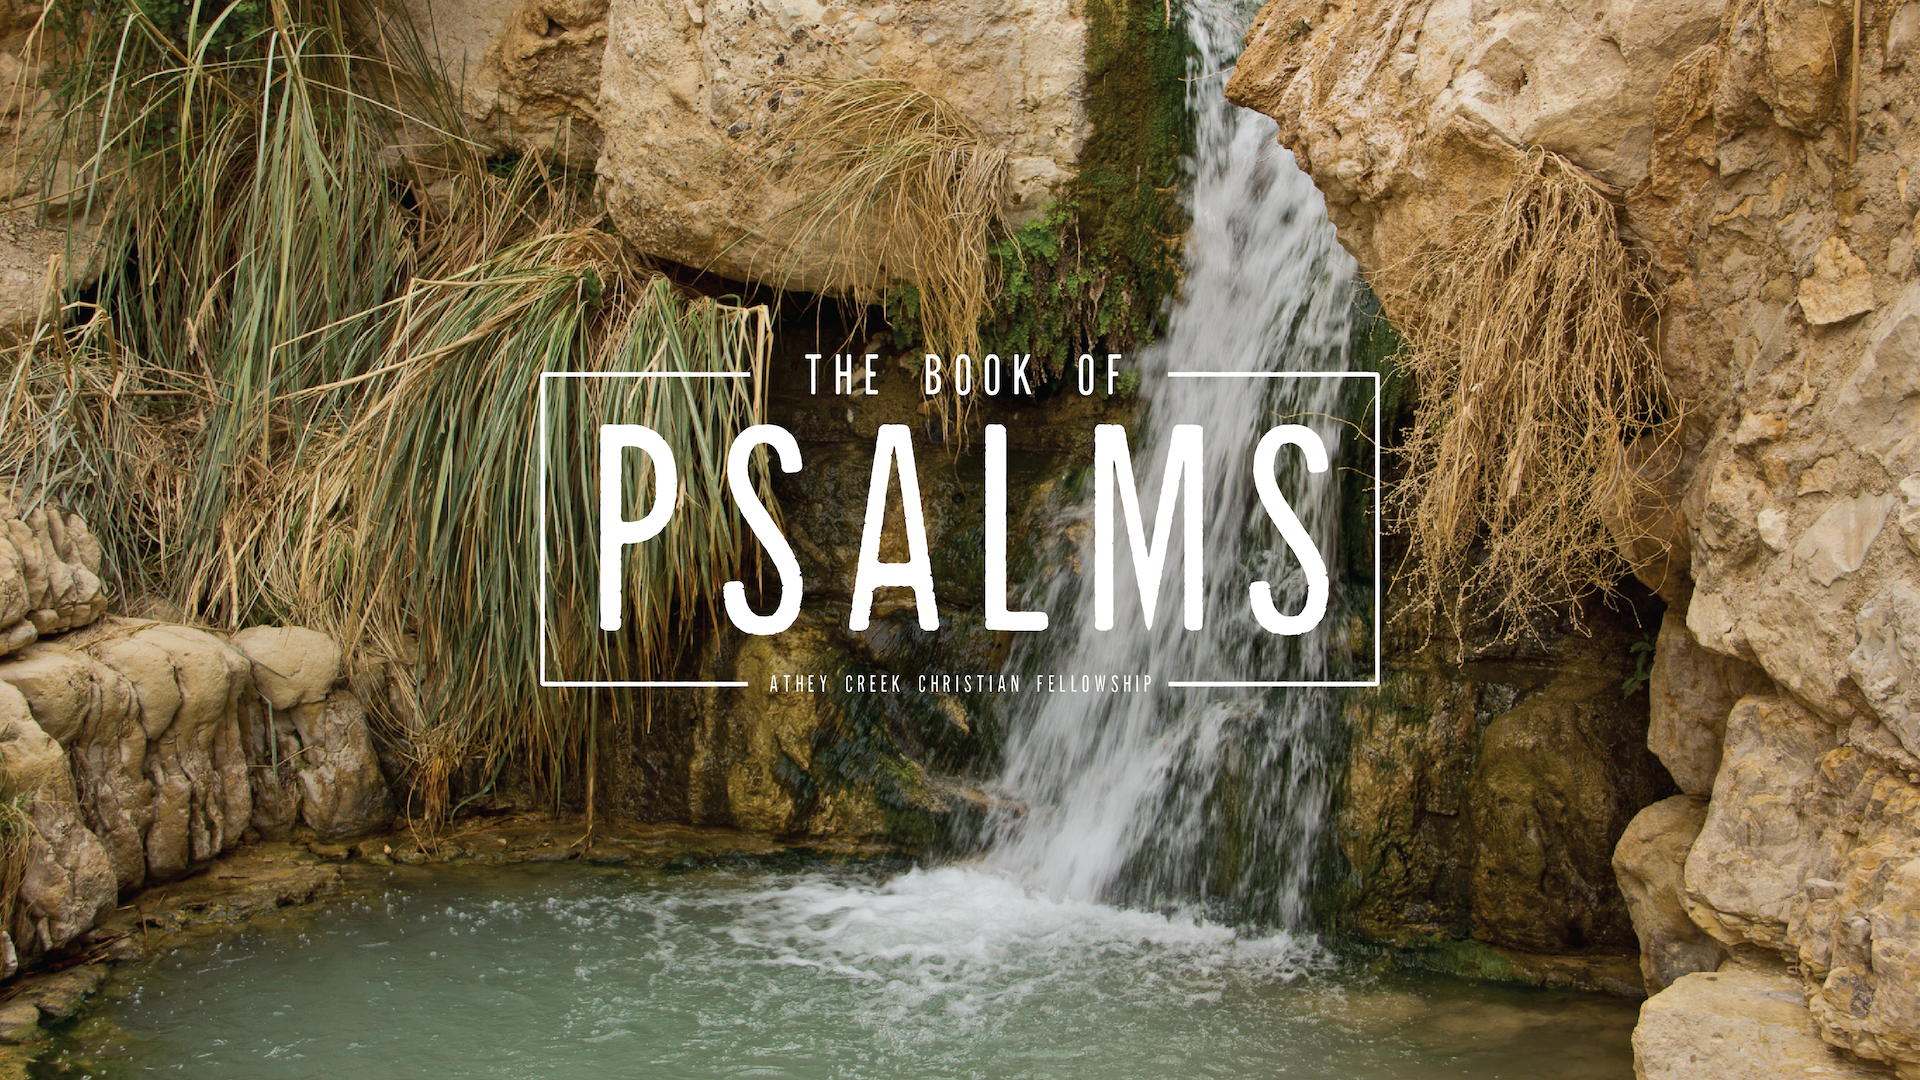 Poster forThrough the Bible (Psalms 99-102)